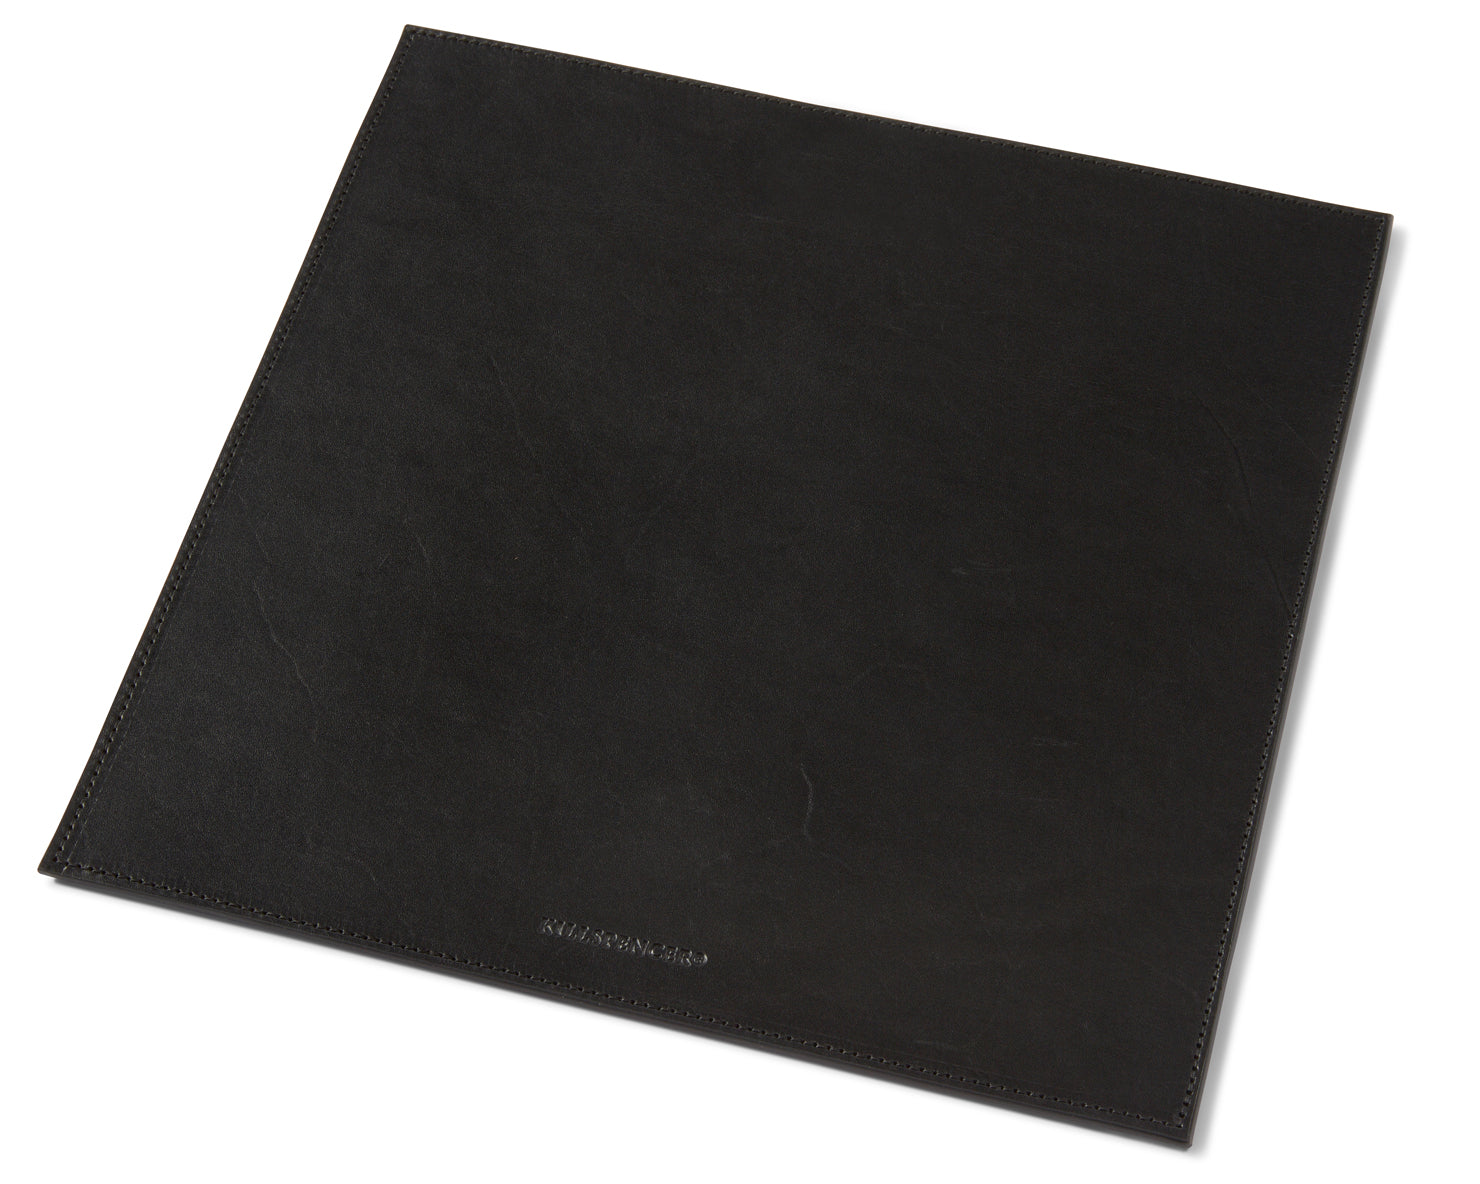 MOUSEPAD | KILLSPENCER® - Black Bullhide Leather